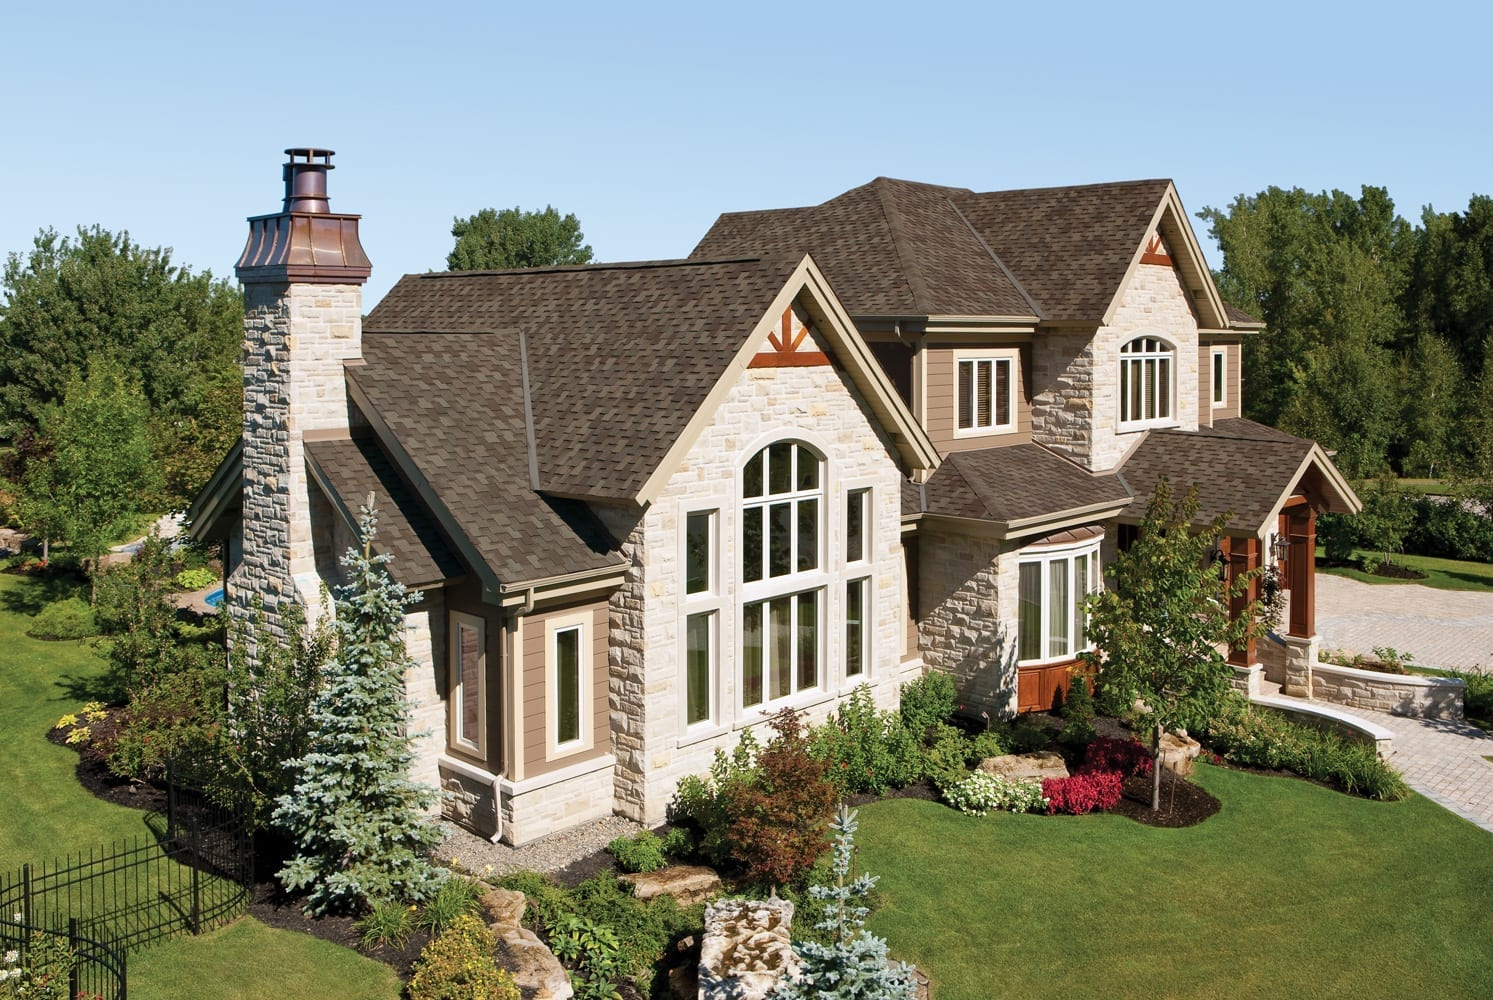 Asphalt shingle colors to match brown houses include grey, brown, black, green and possibly blue